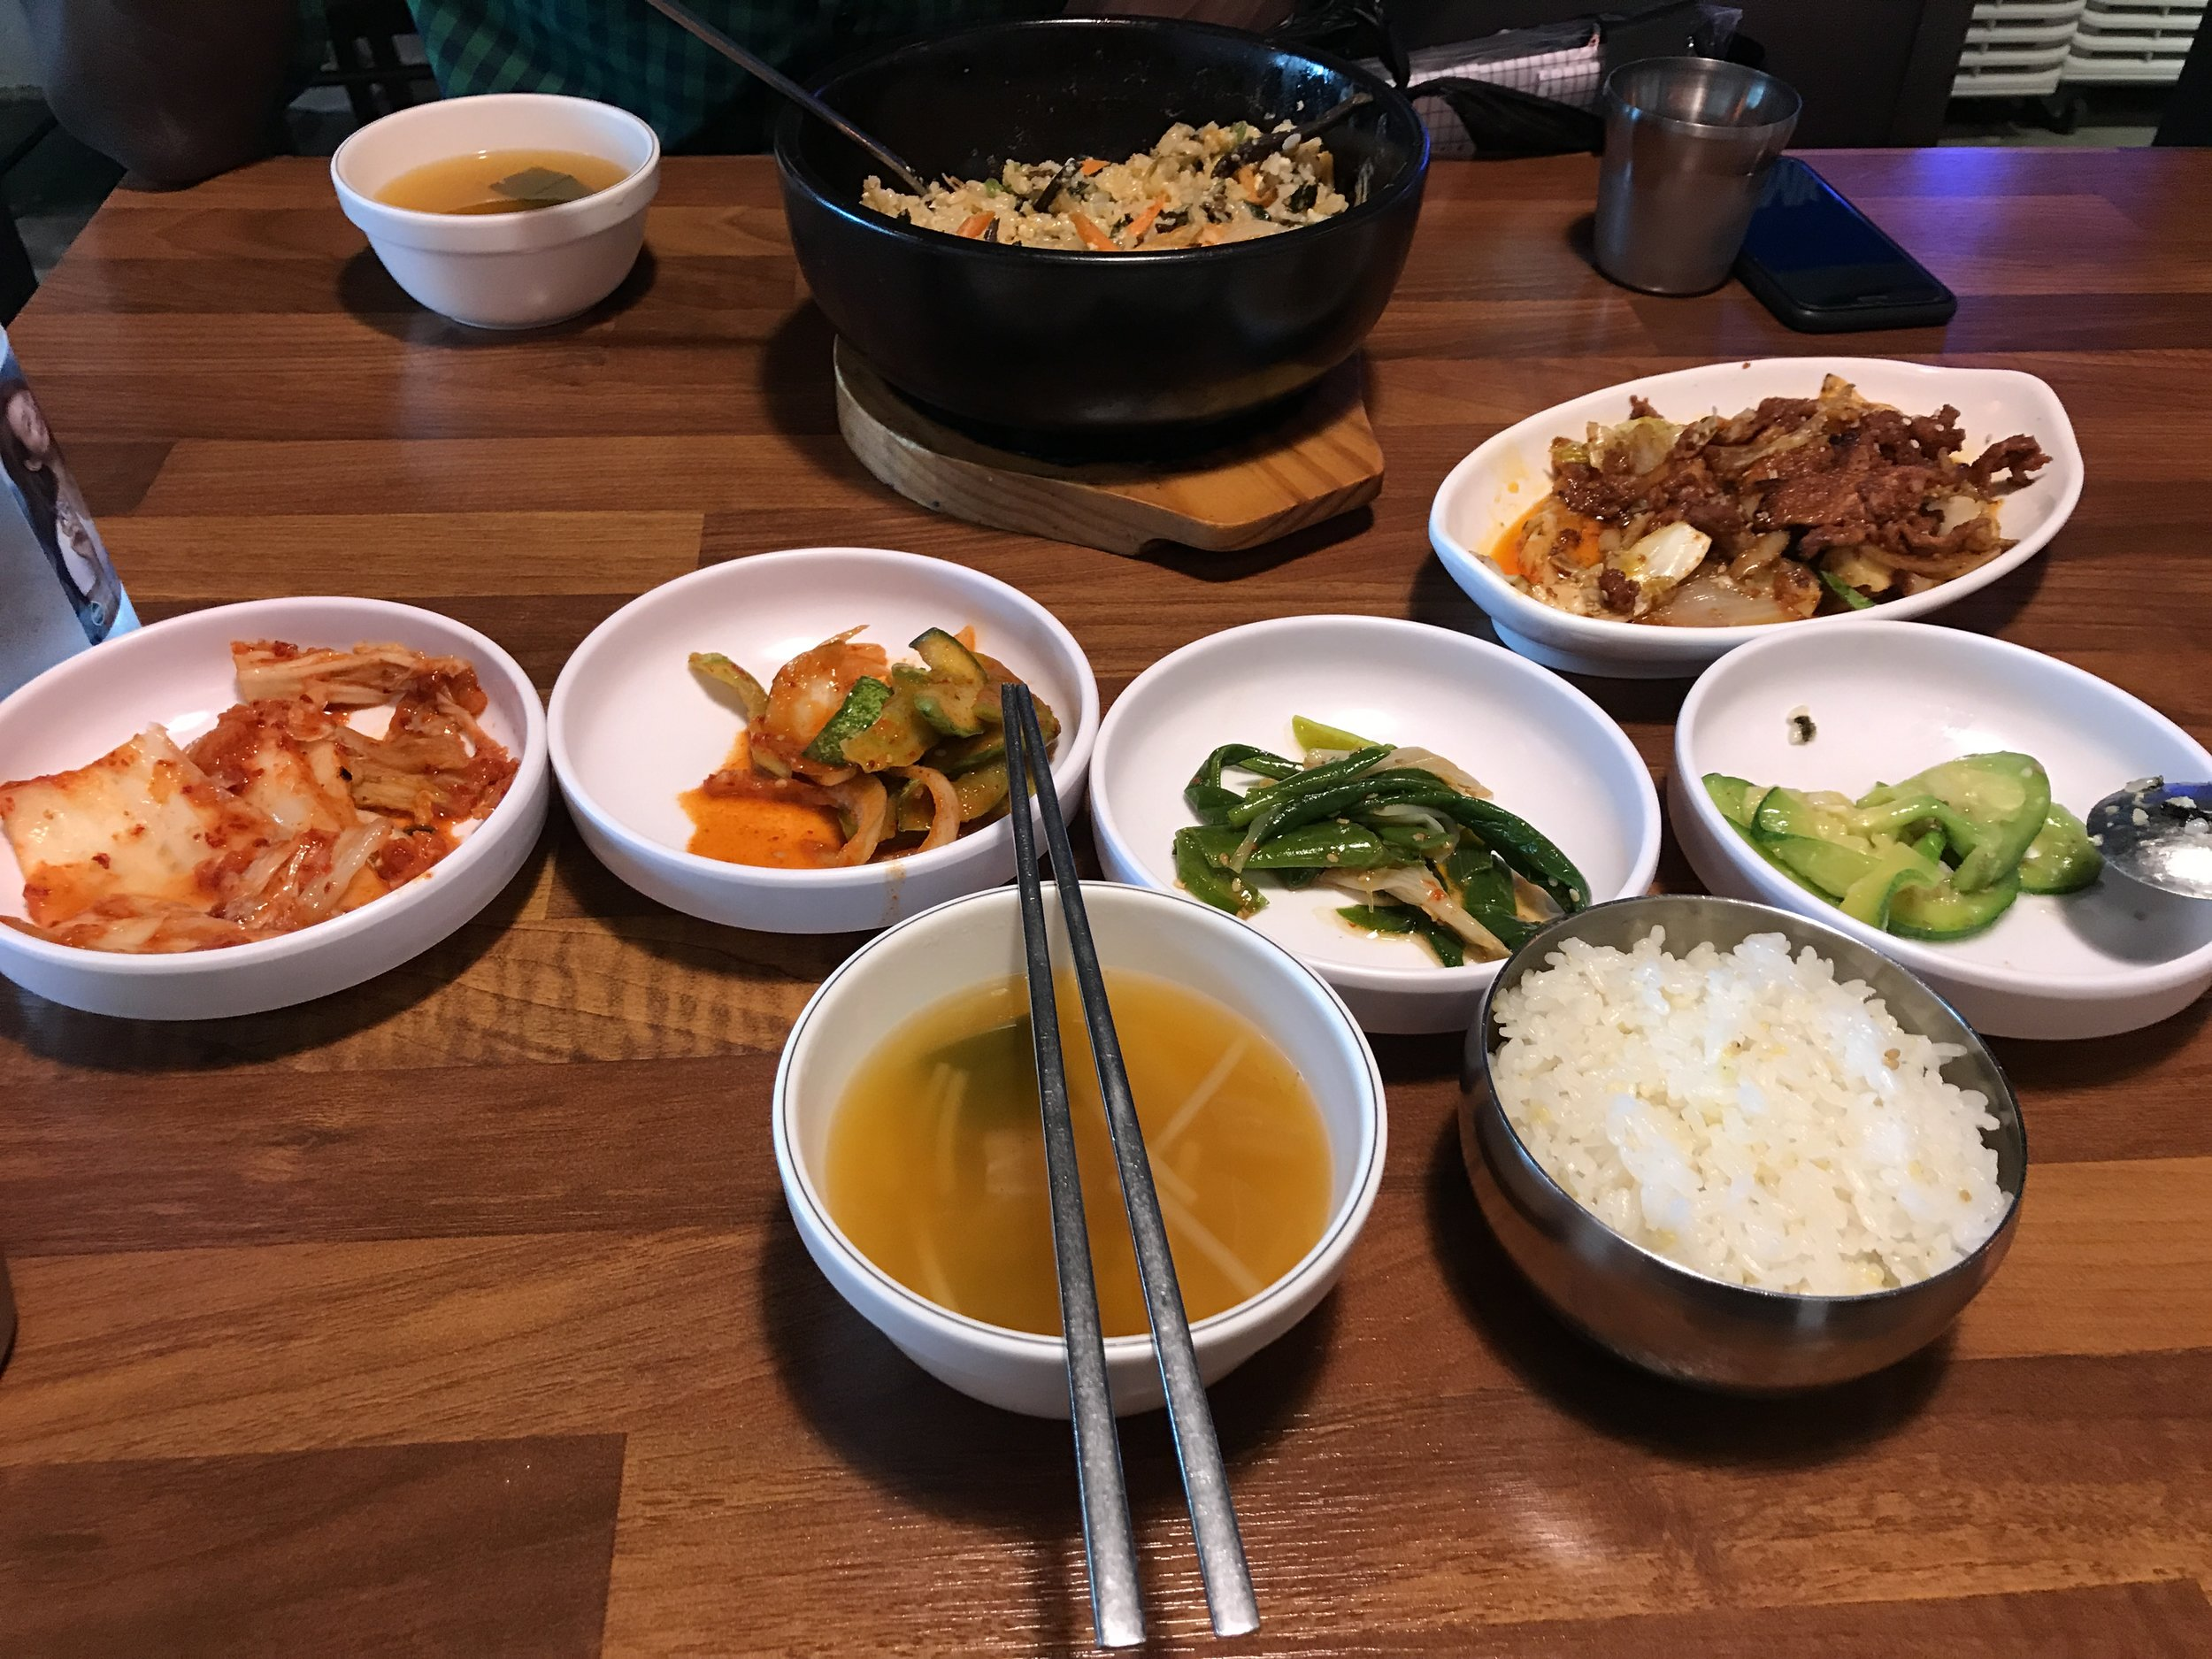 Korean food is my jam, for real.